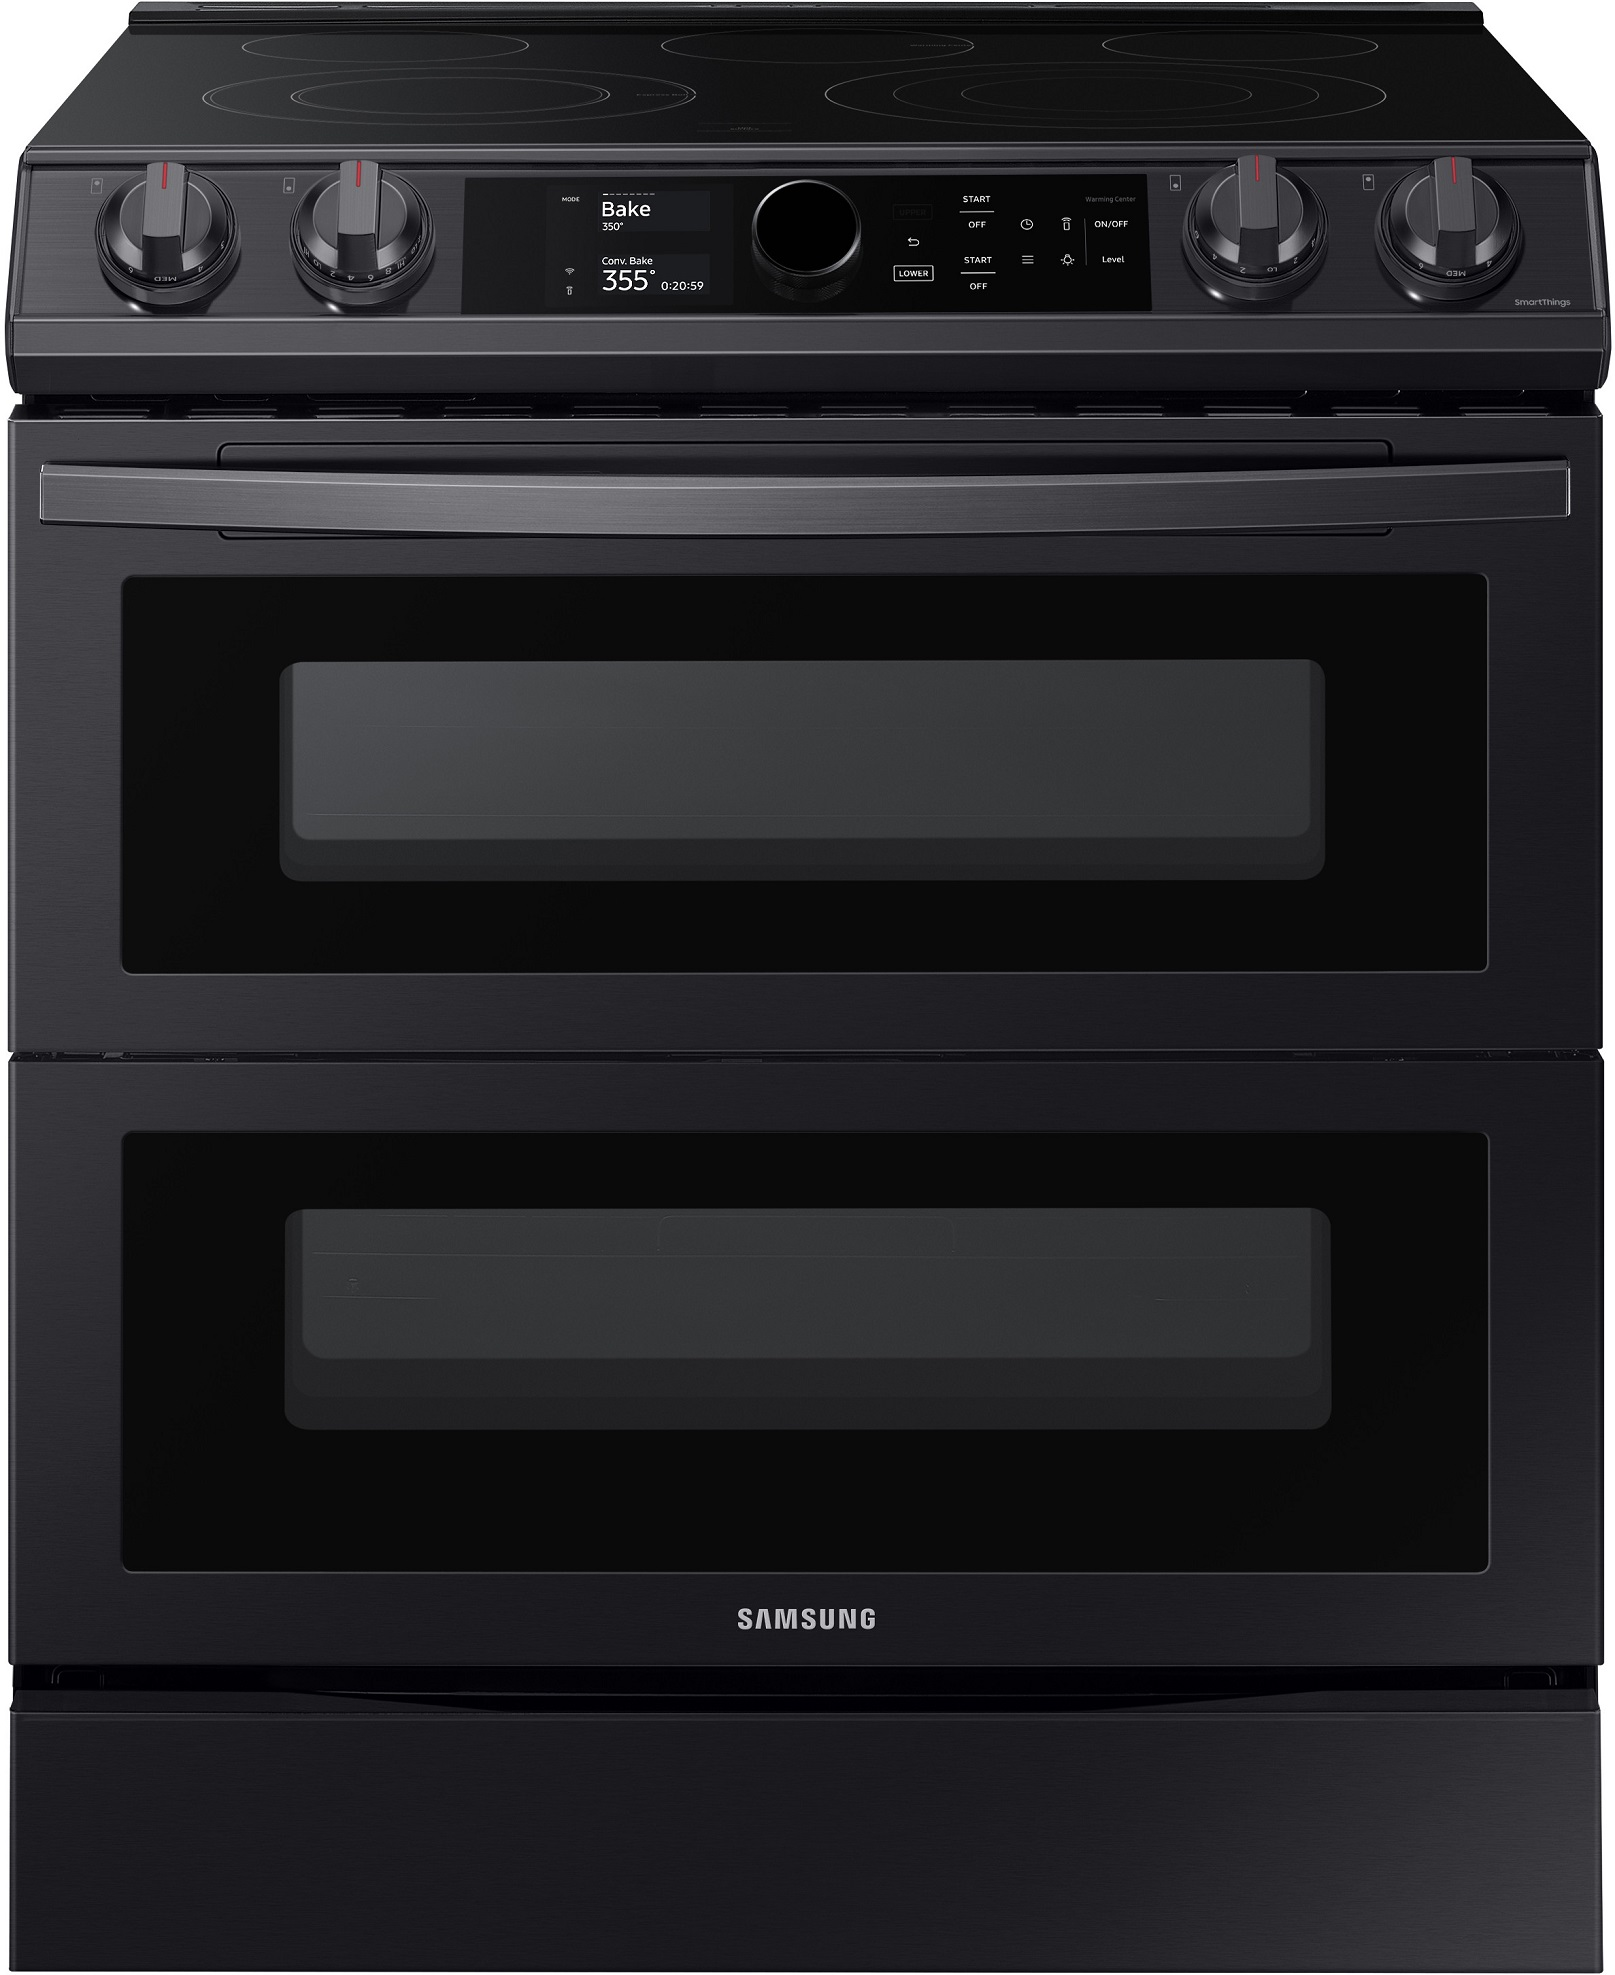 Samsung Ne63t8751sg 6 3 Cu Ft Flex Duo Front Control Slide In Electric Range With Smart Dial Air Fry Wi Fi Fingerprint Resistant Black Stainless Steel